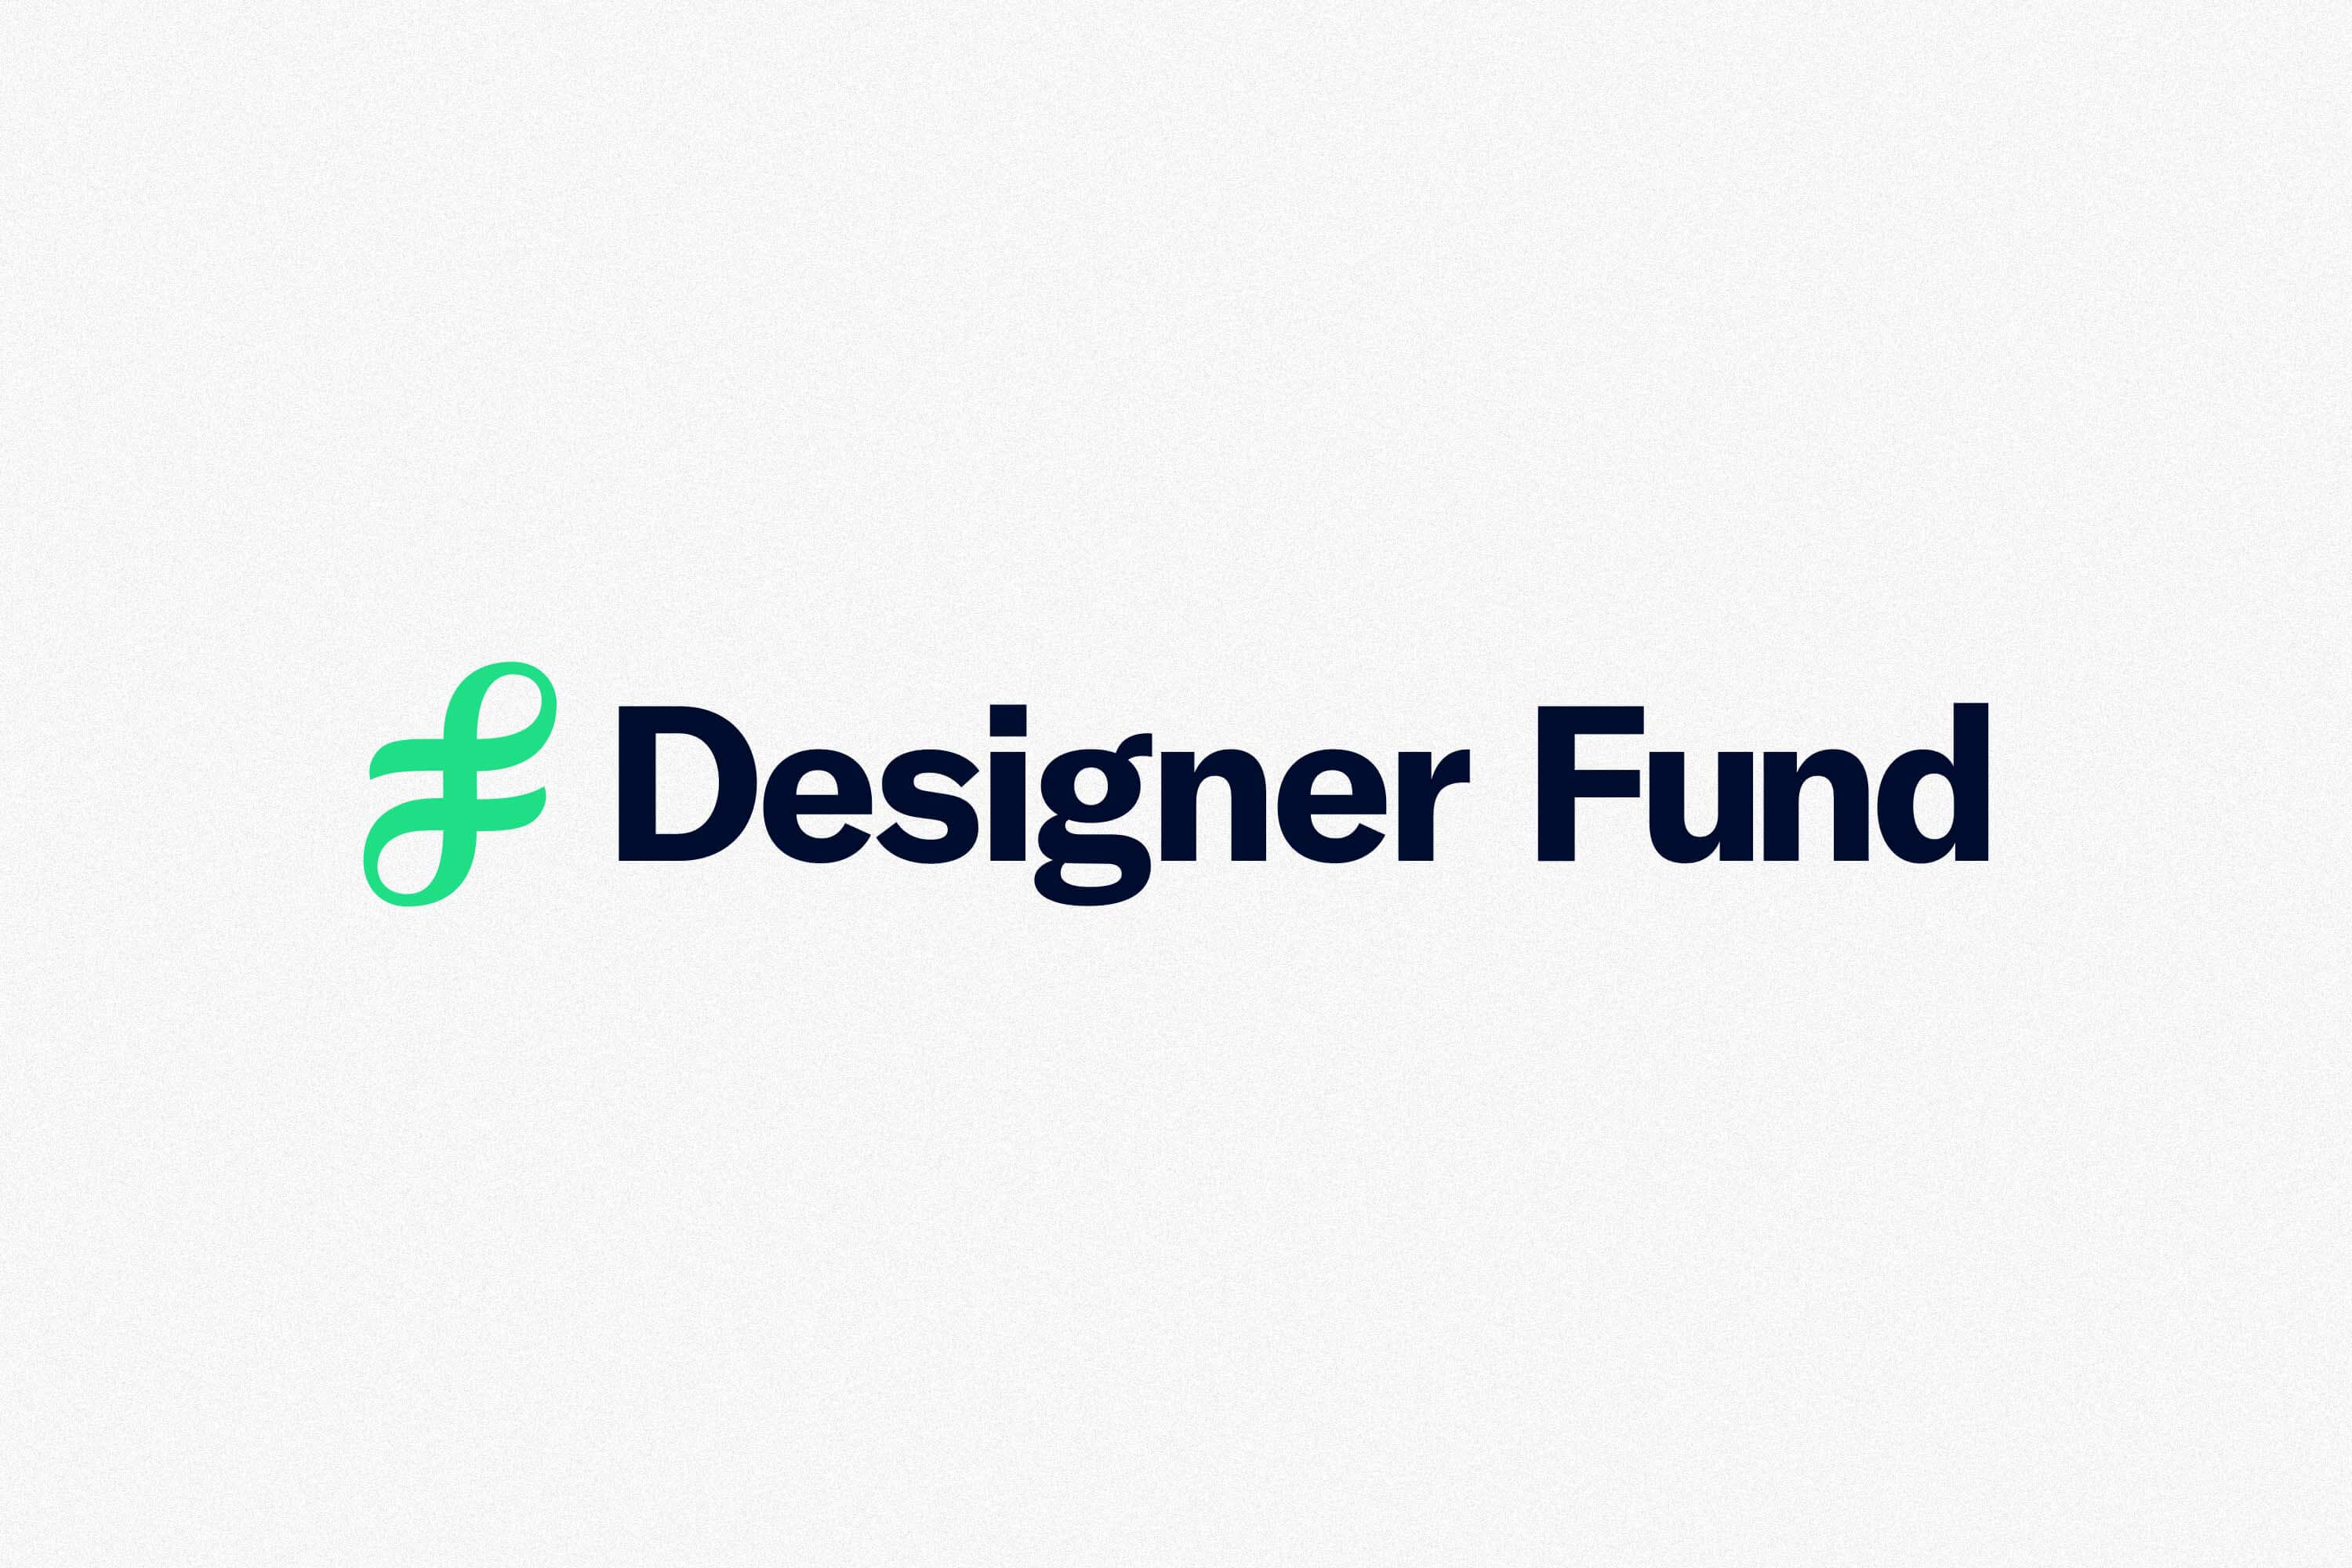 Designer Fund lock-up.